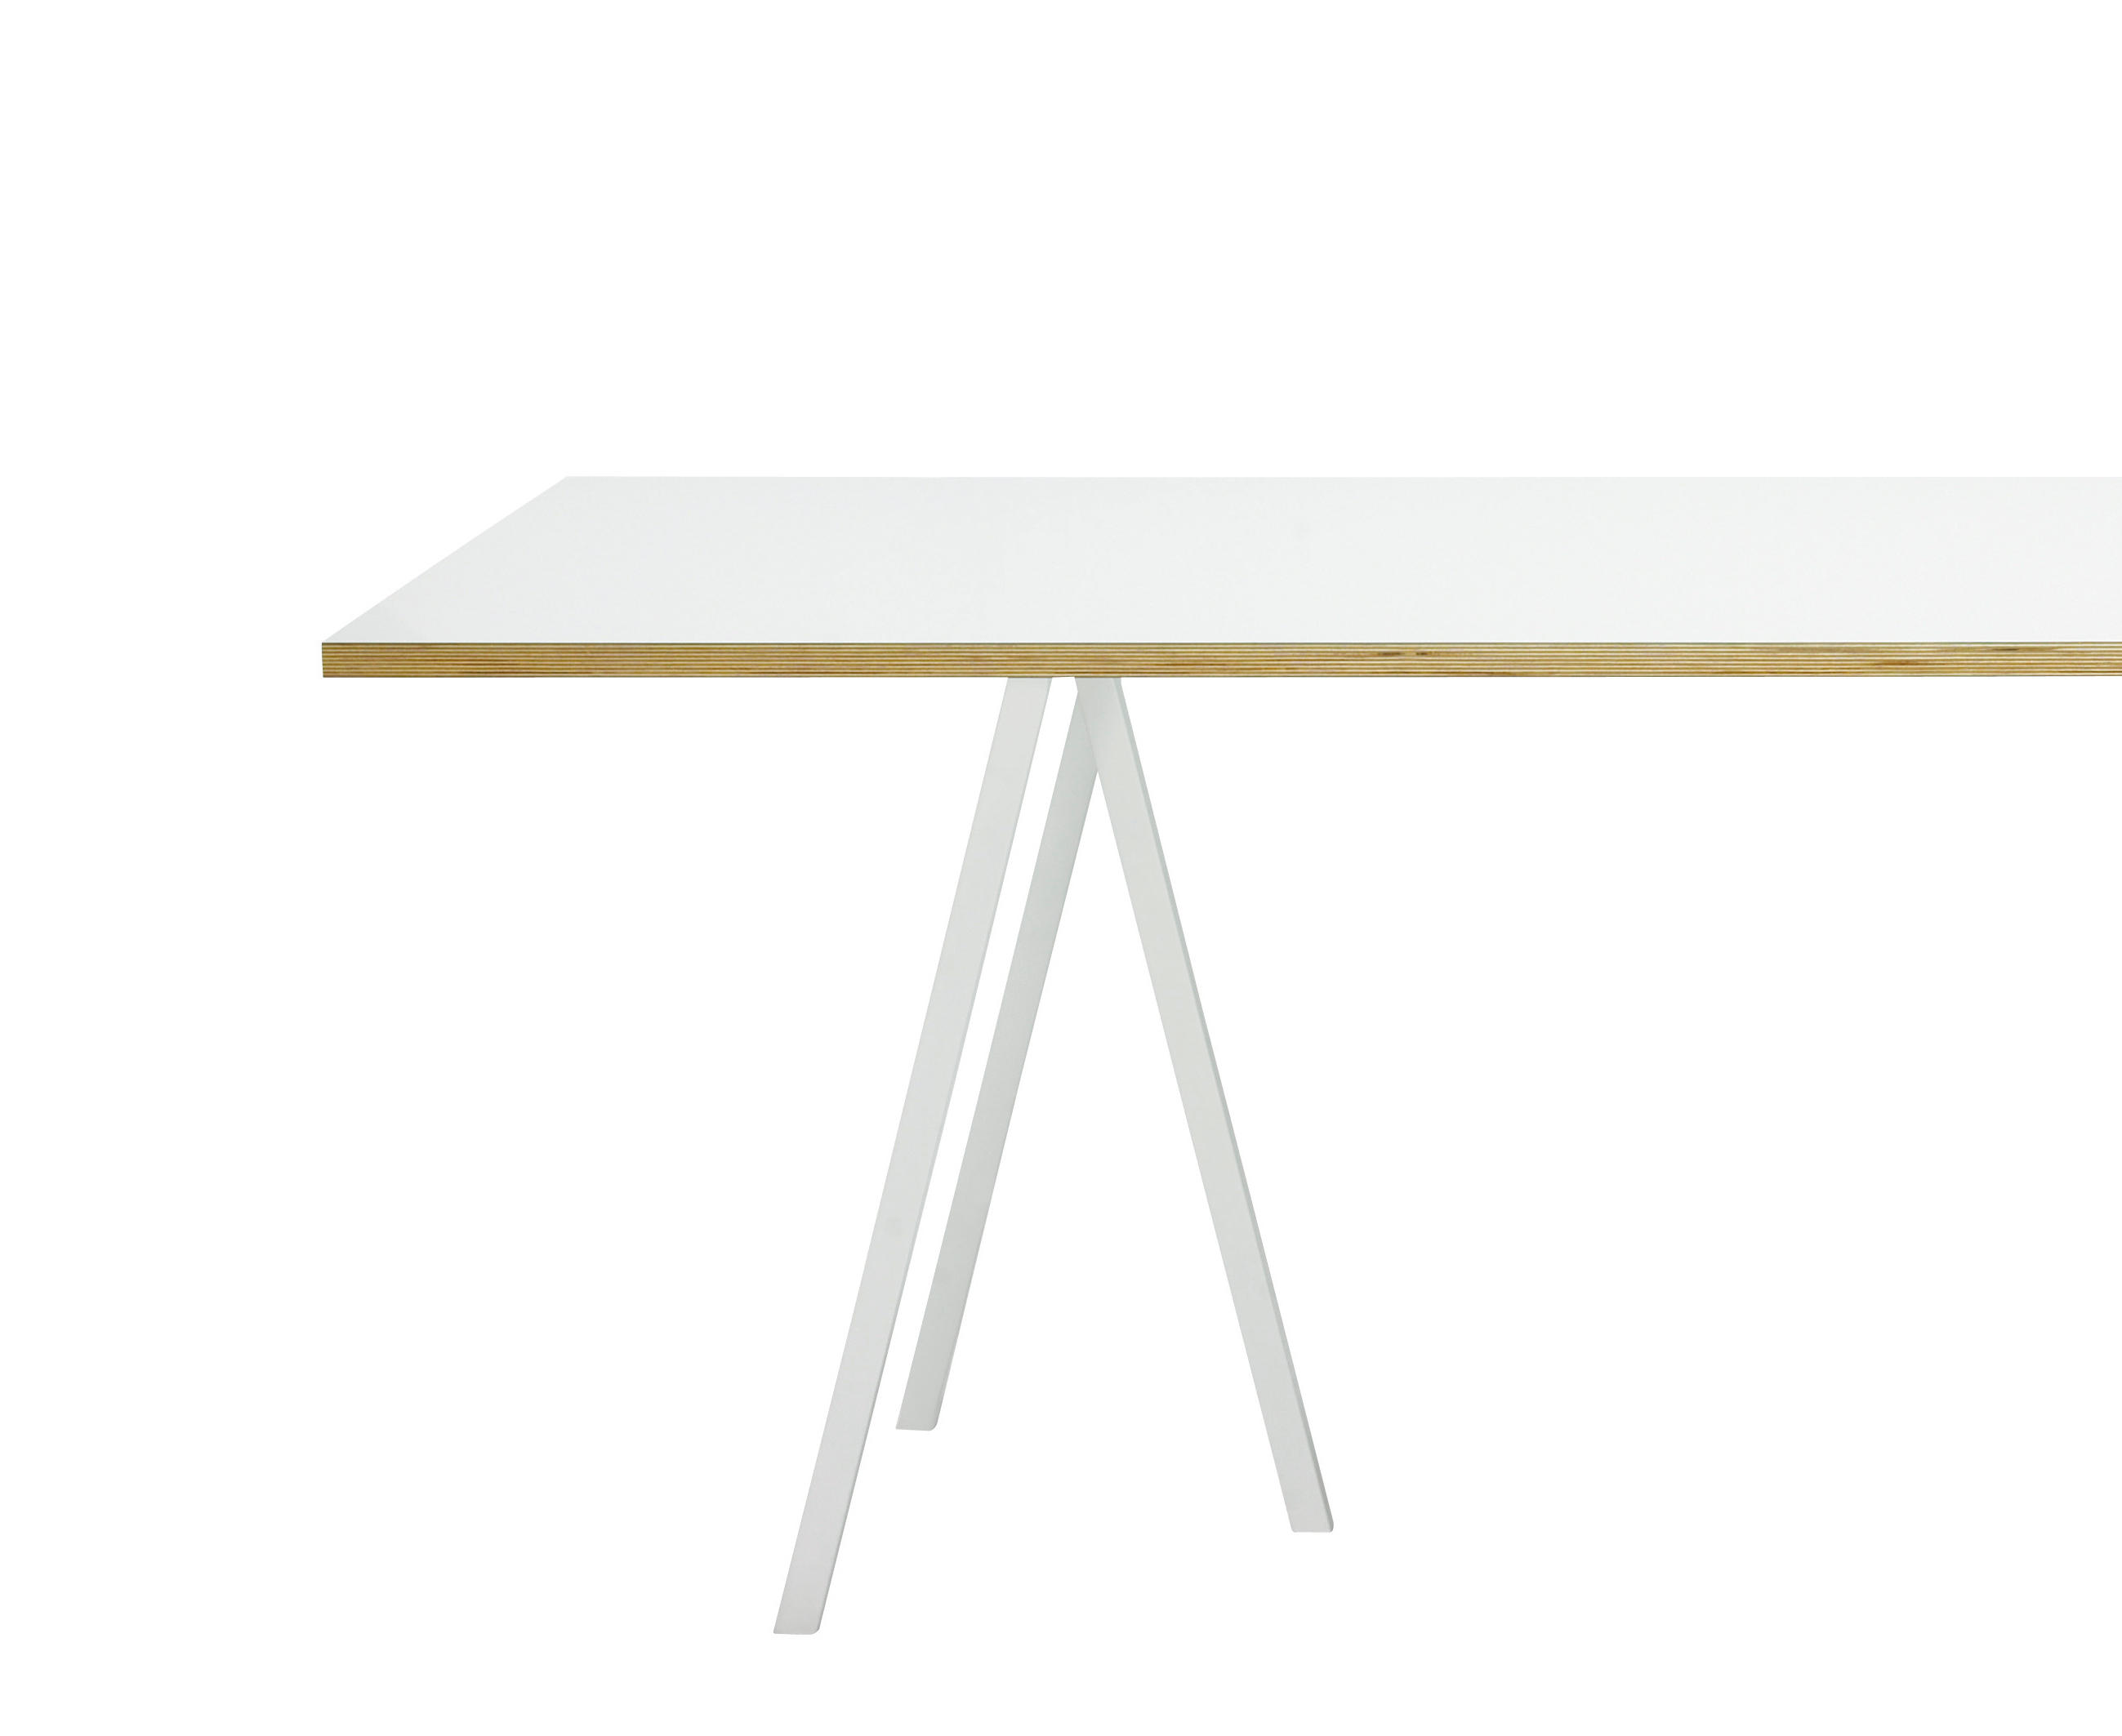 LOOP STAND HIGH TABLE 160 Bar tables from Hay